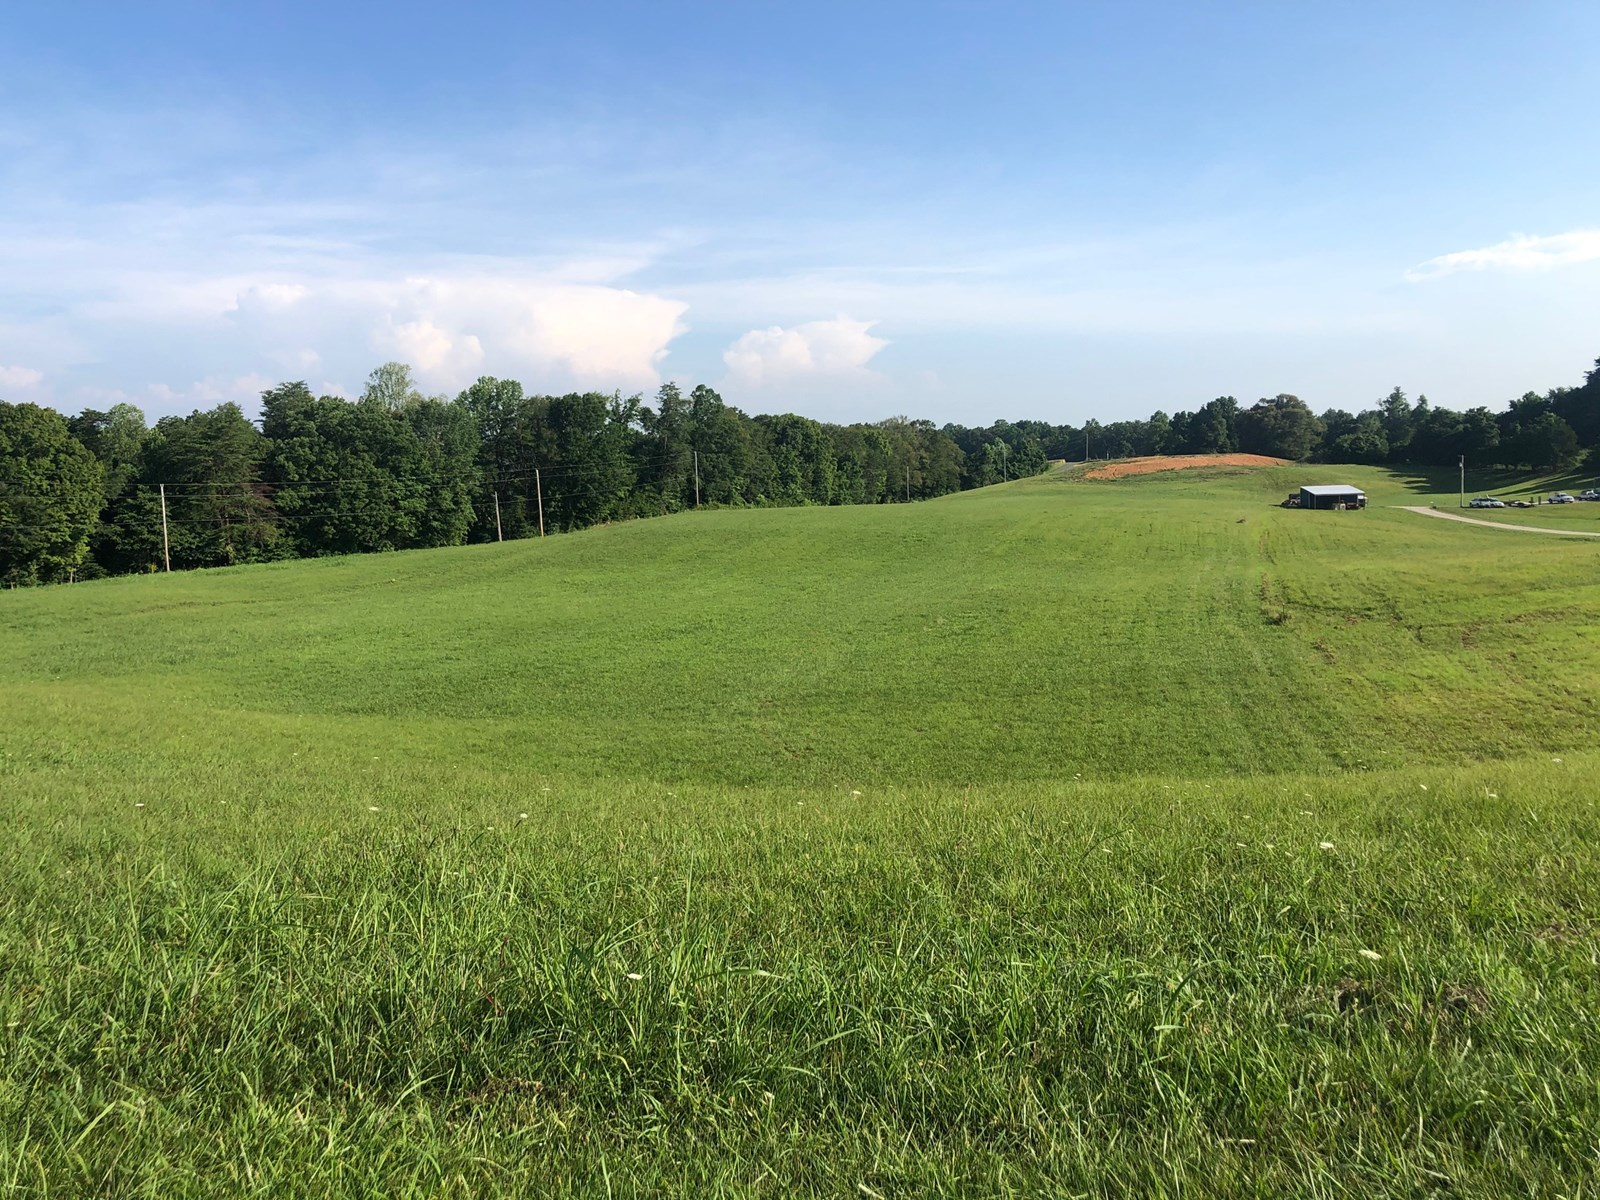 Land for Sale in Kentucky close to Lake Cumberland